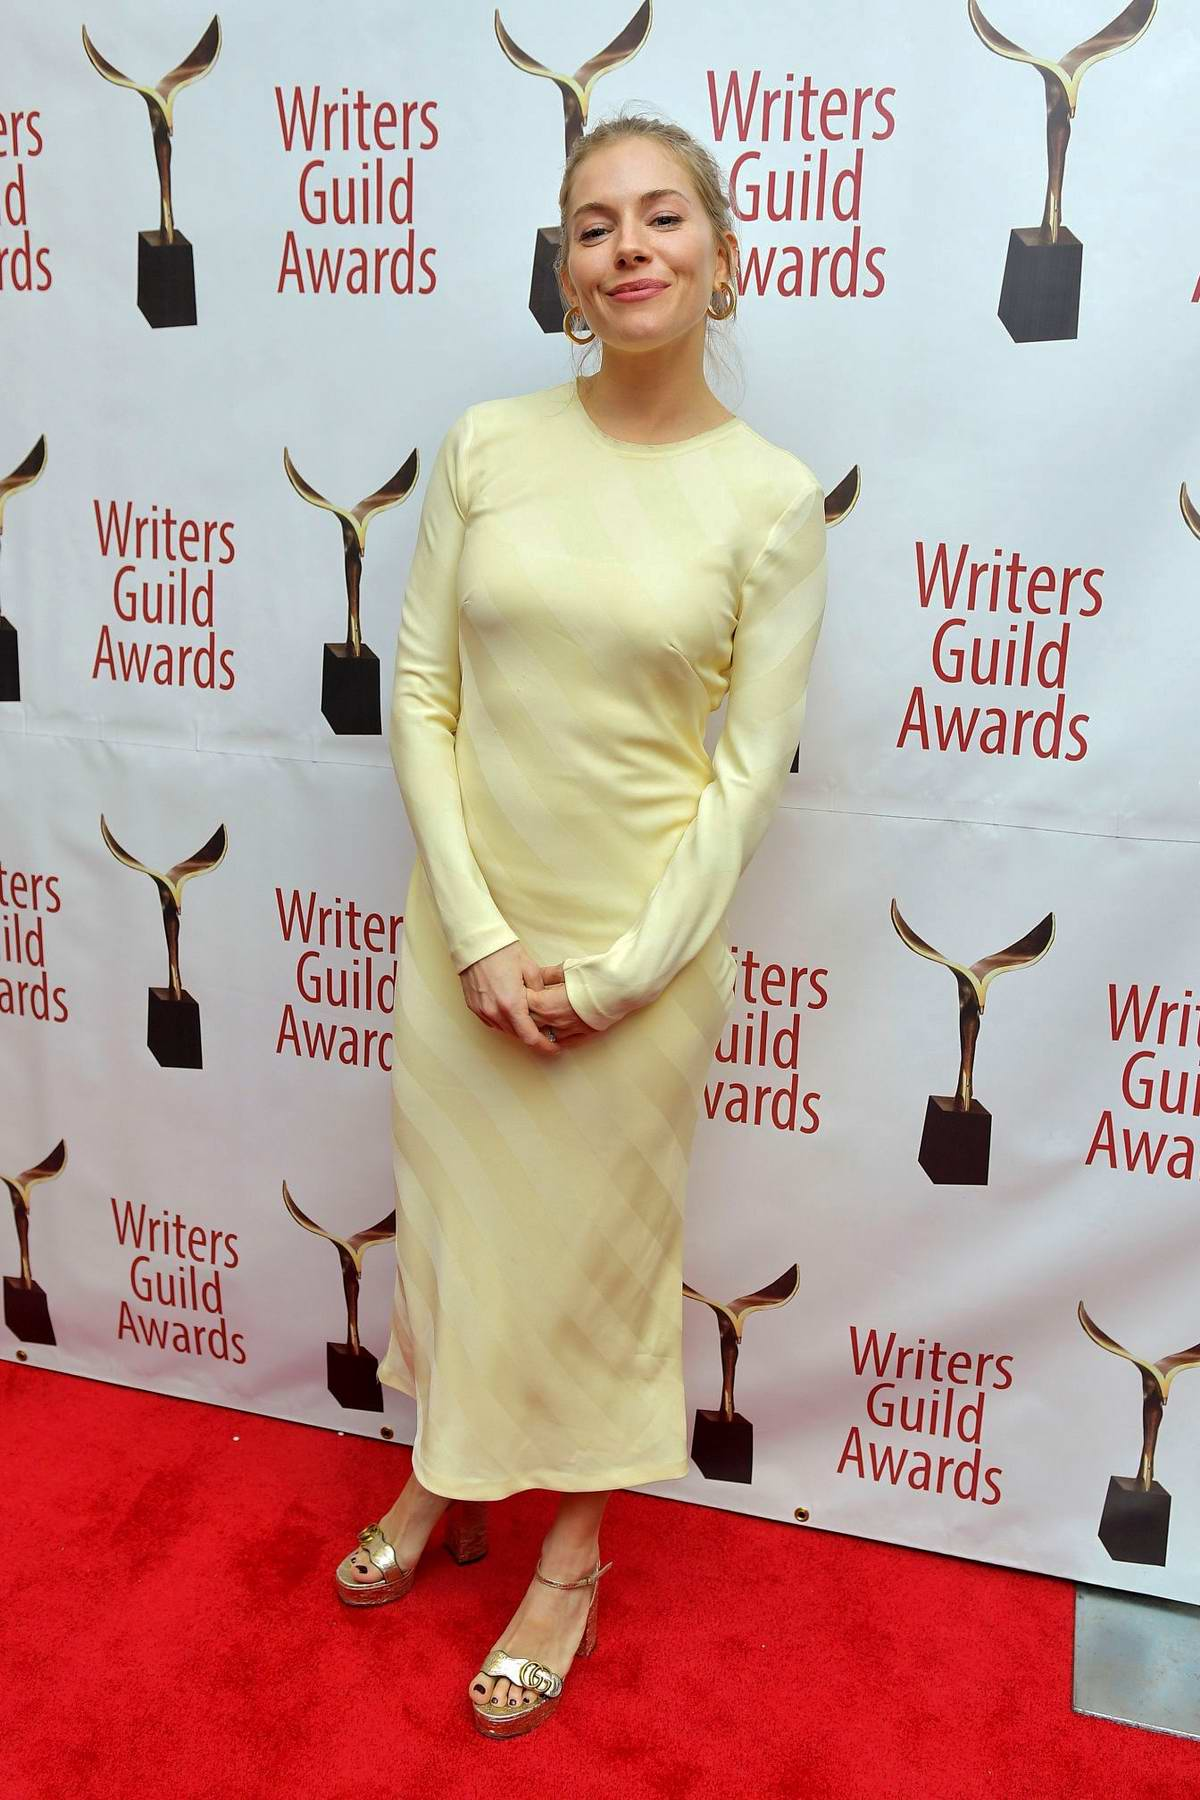 Sienna Miller attends the 72nd Annual Writers Guild Awards in New York City